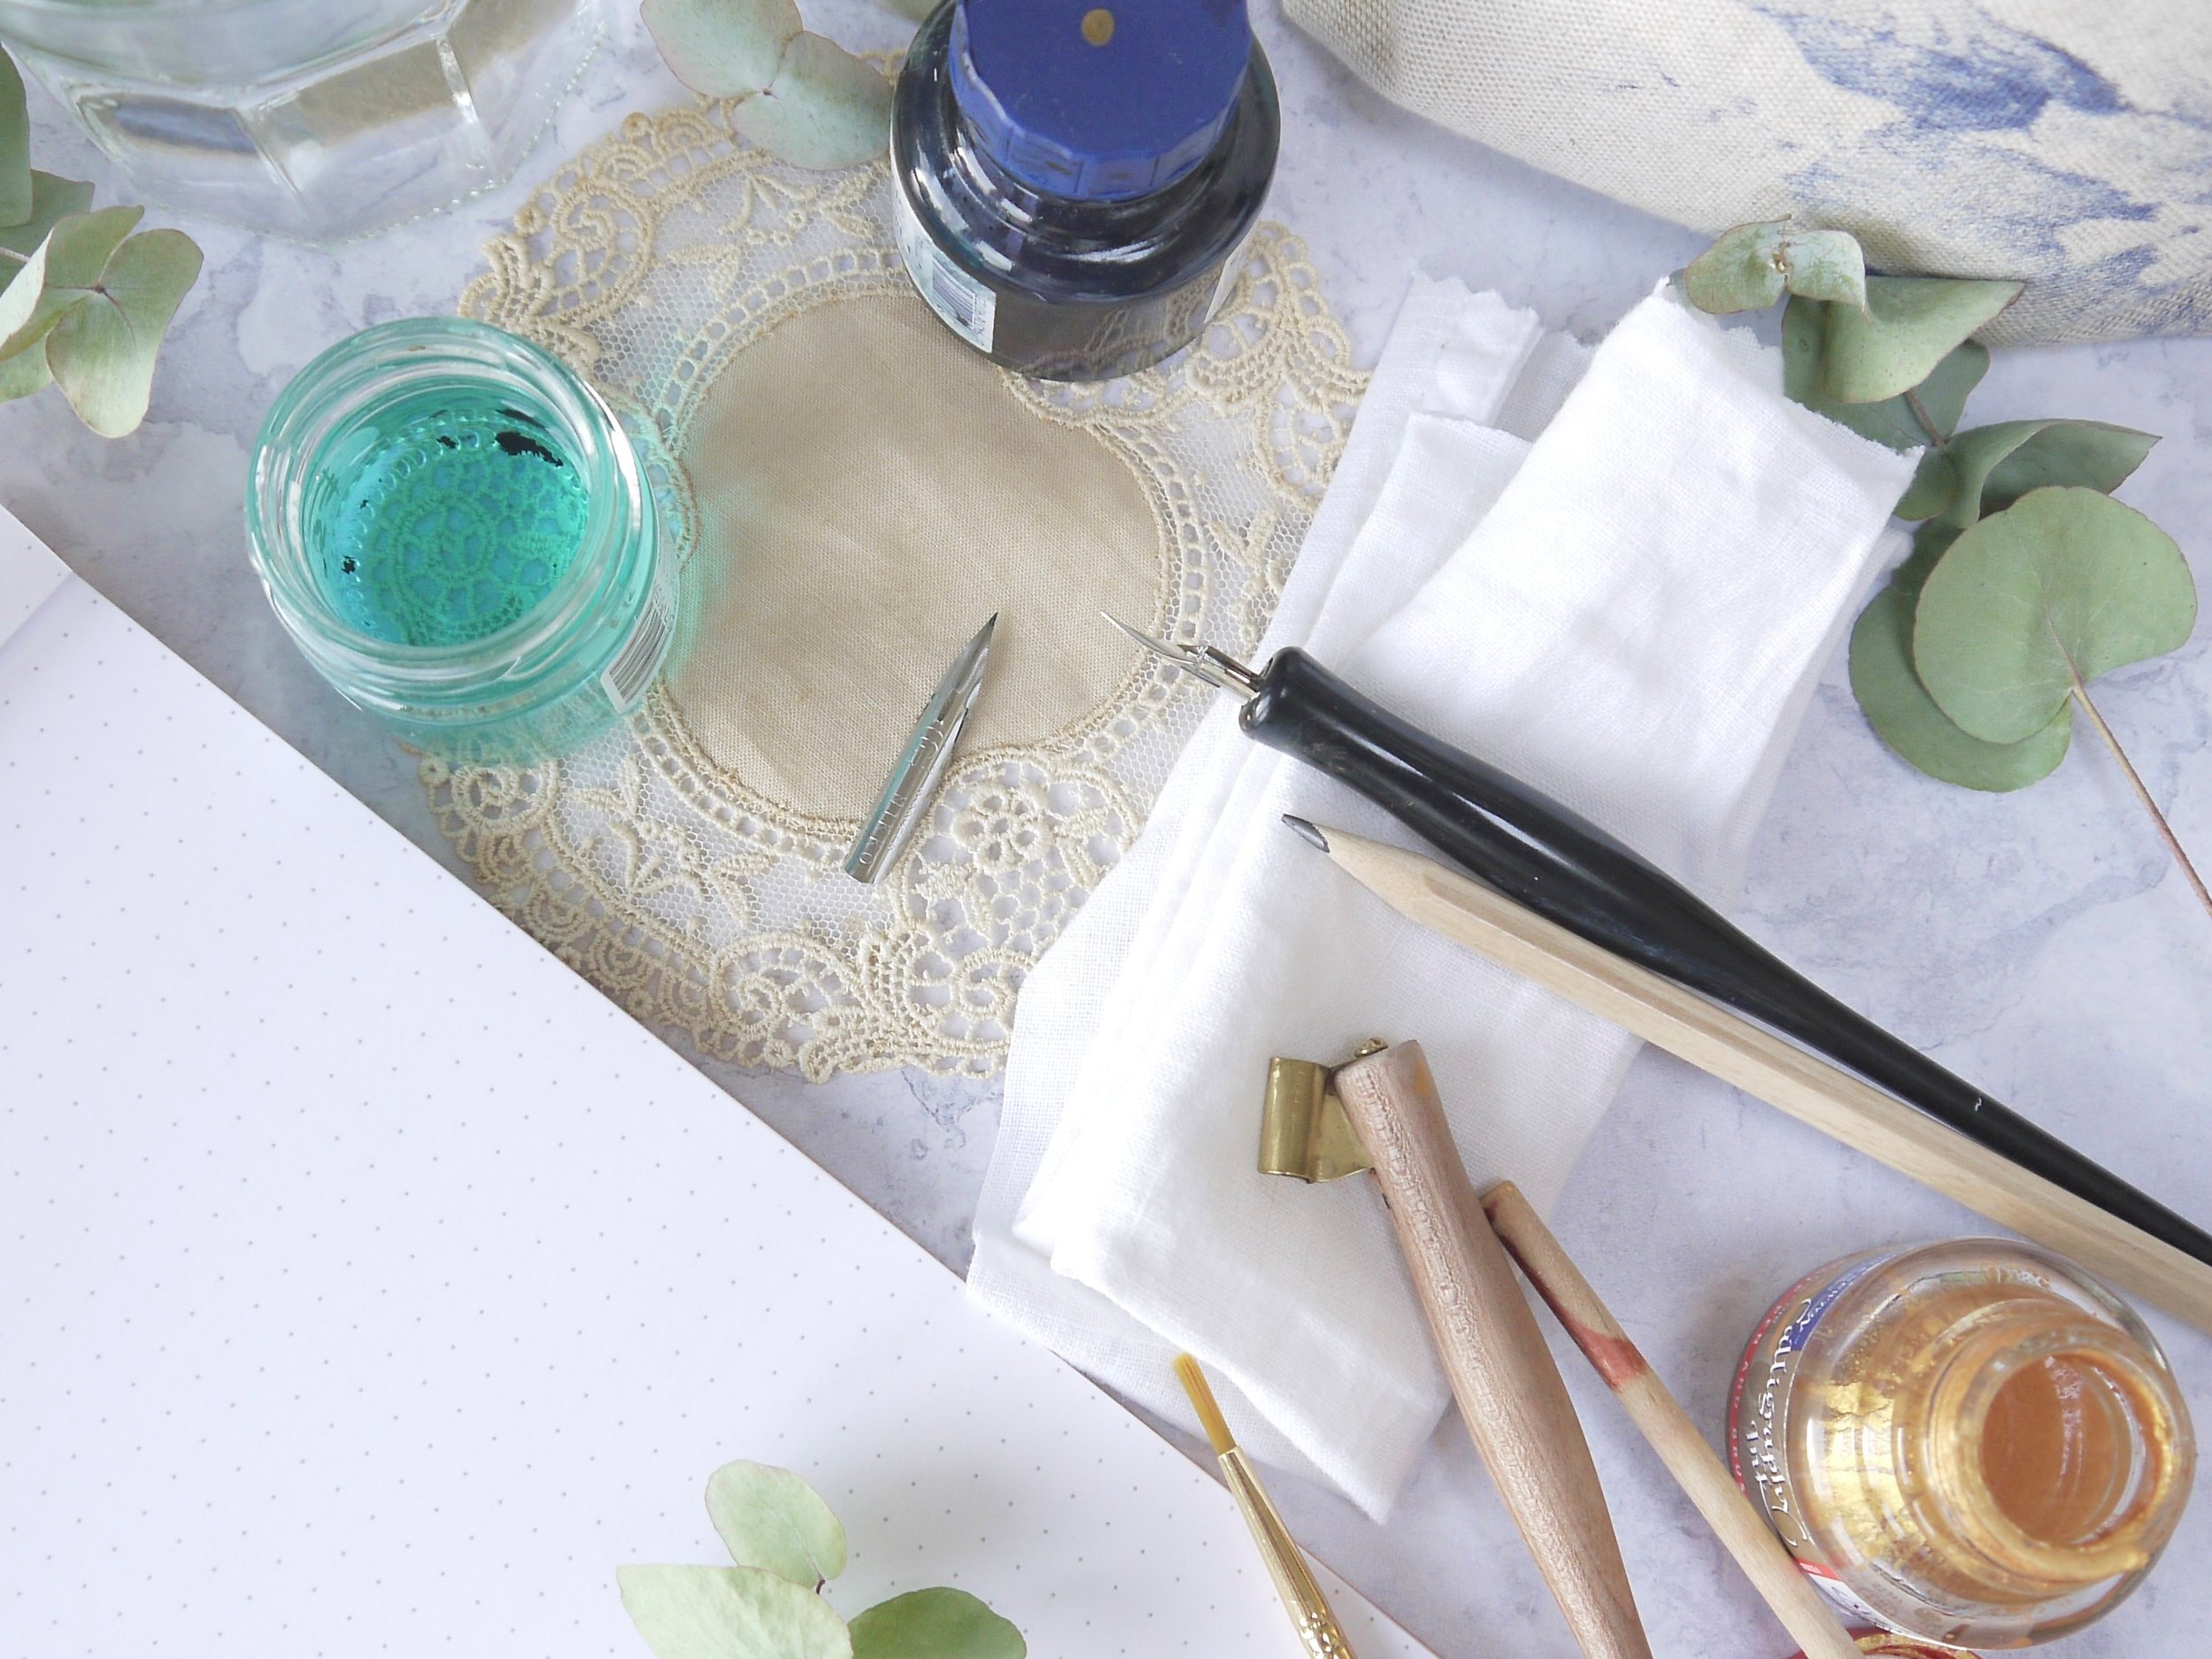 Modern calligraphy toolkit you need to get started with the pointed pen